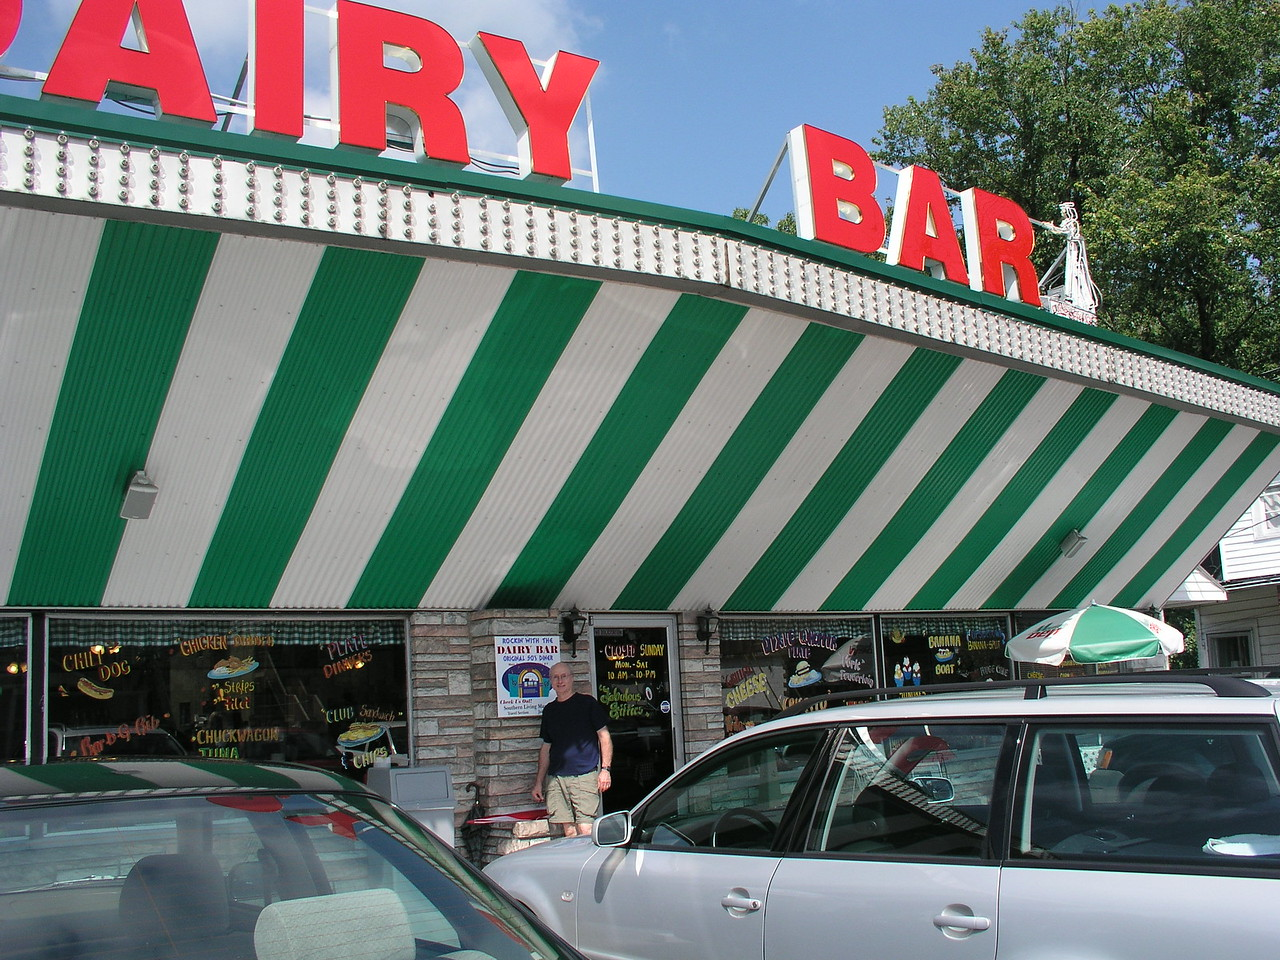 The Dairy Bar